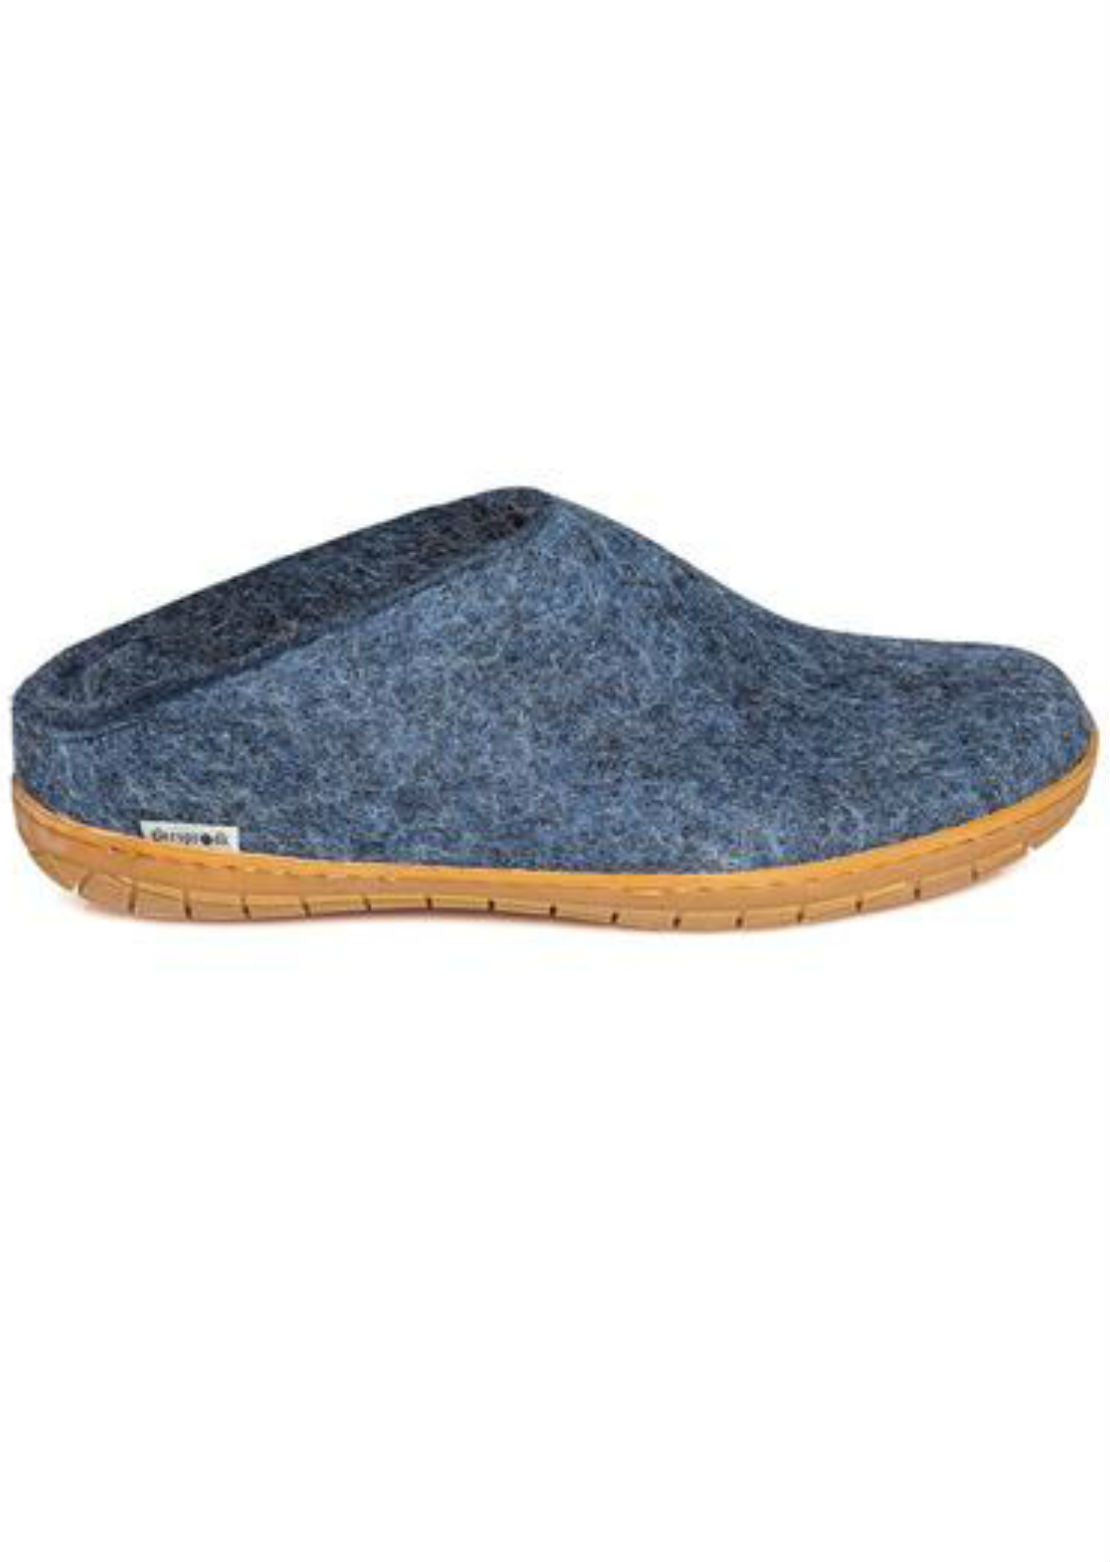 Glerups Unisex Natural Rubber Open Heel Slippers Denim